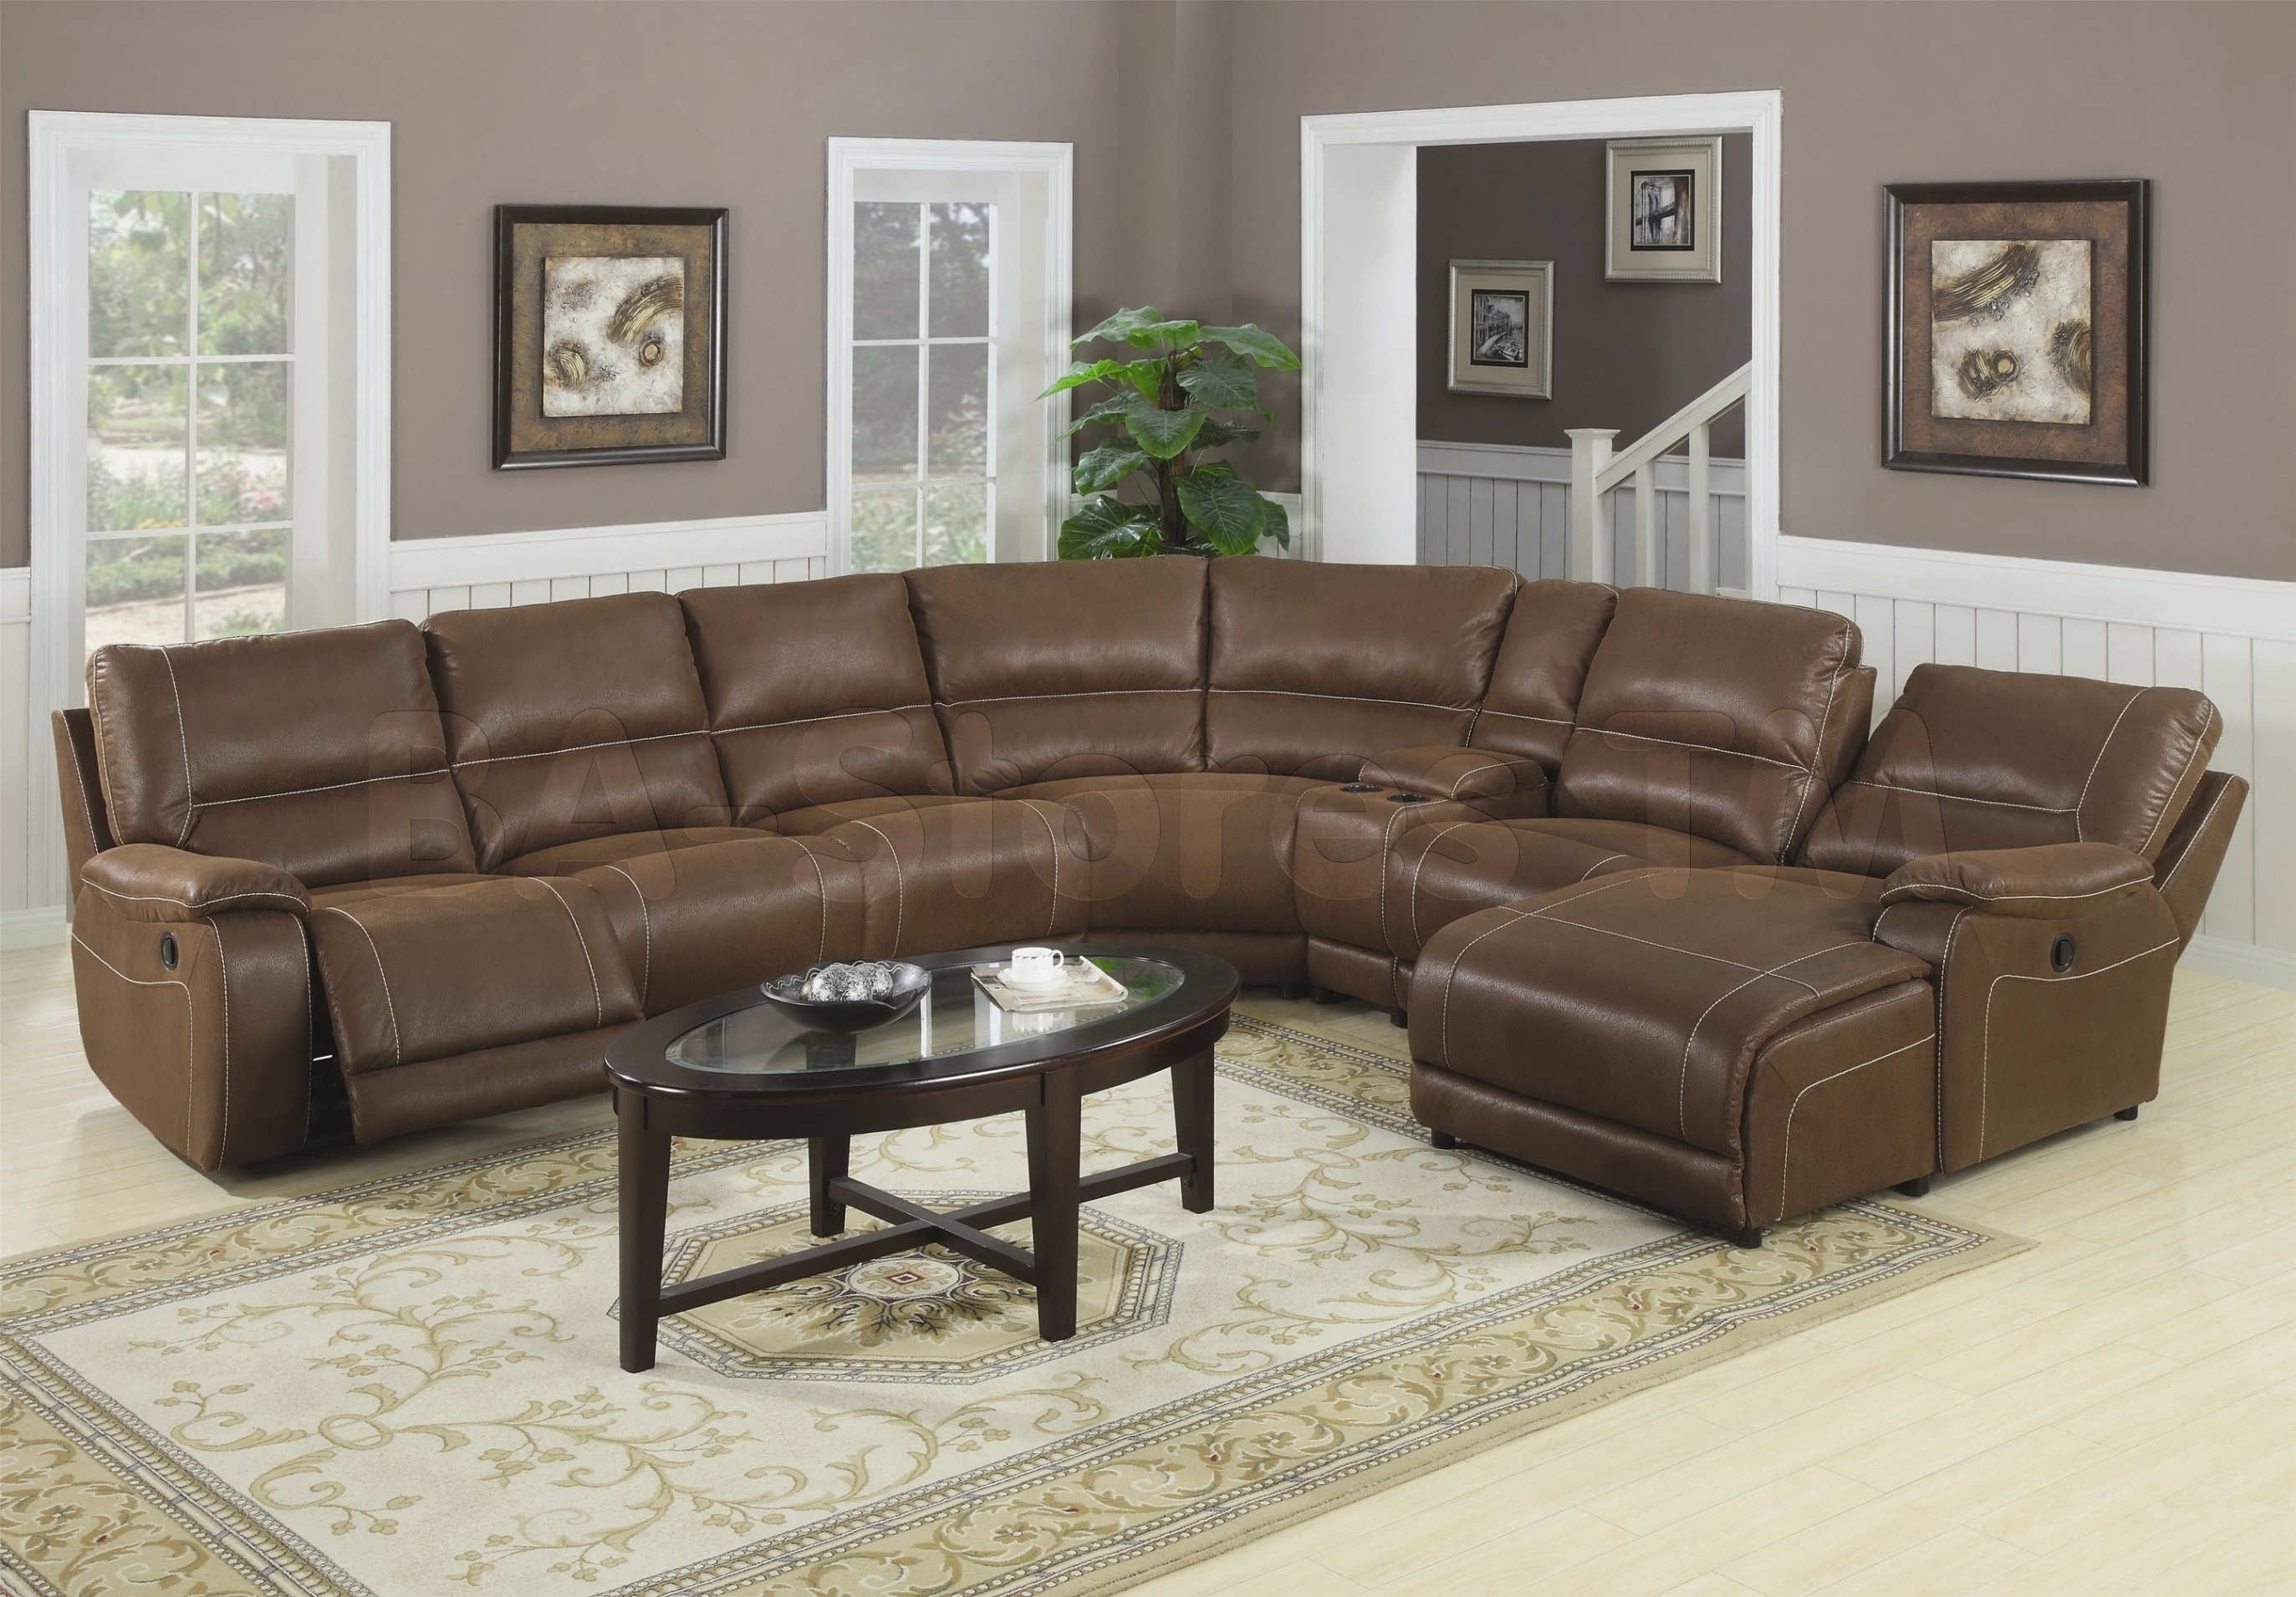 Best Of Sectional Sofas At The Brick – Sectional Sofas for The Brick Sectional Sofas (Image 2 of 10)